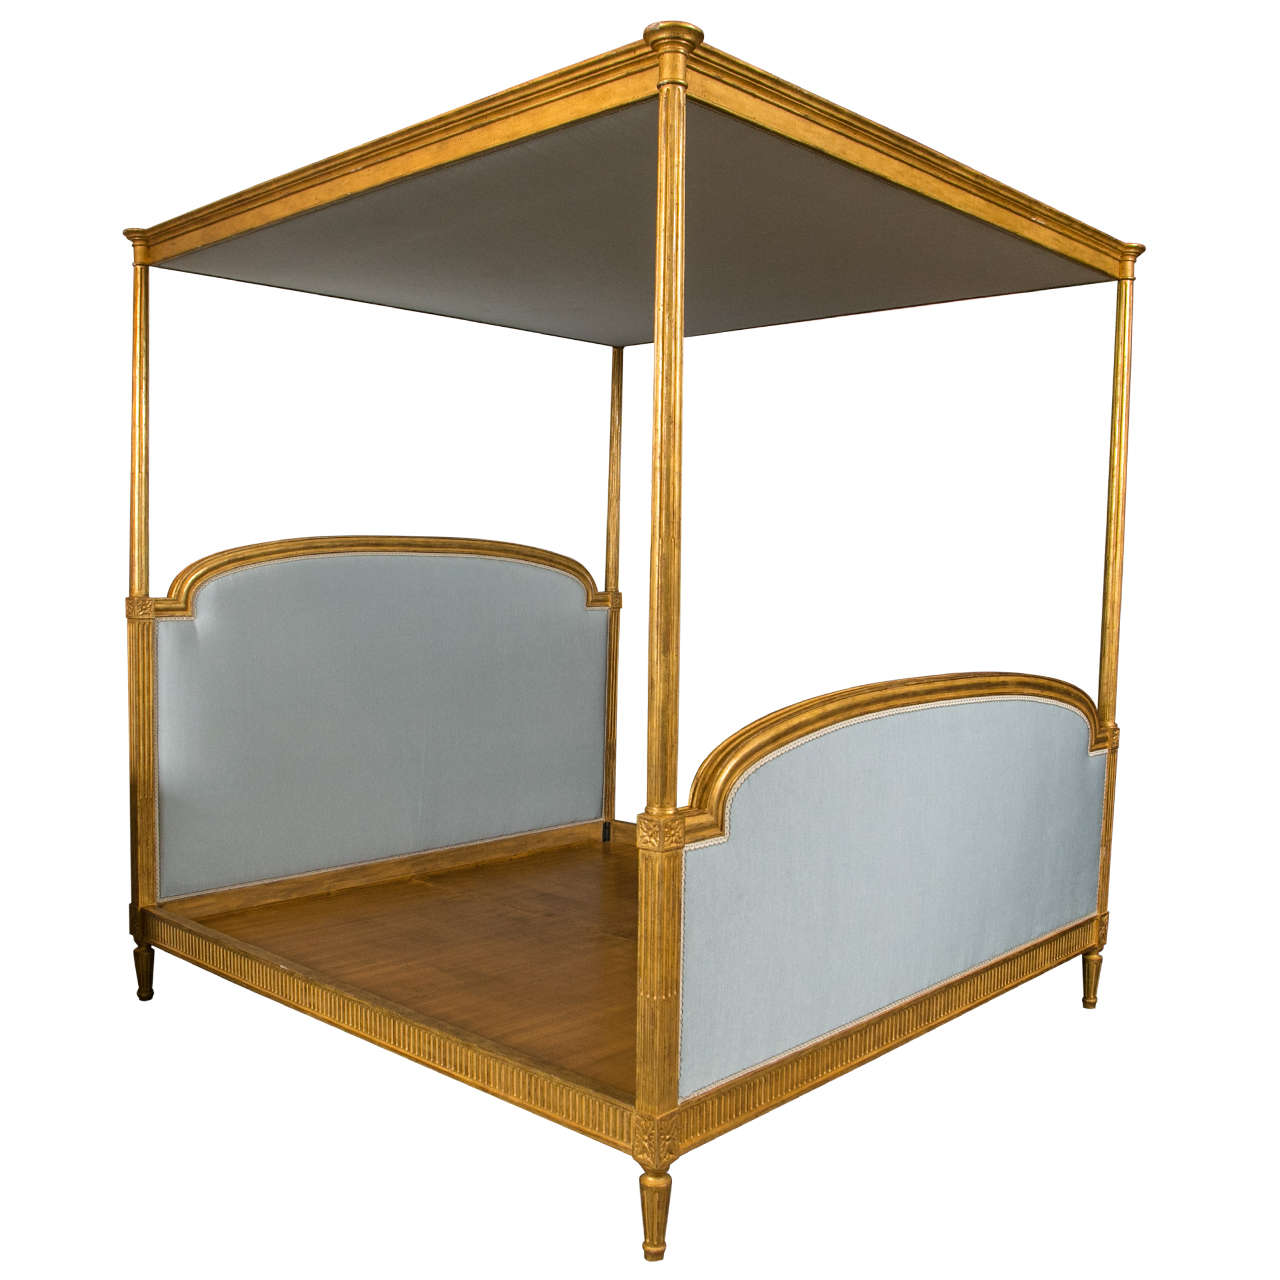 French canopy bed design decoration for French style gazebo